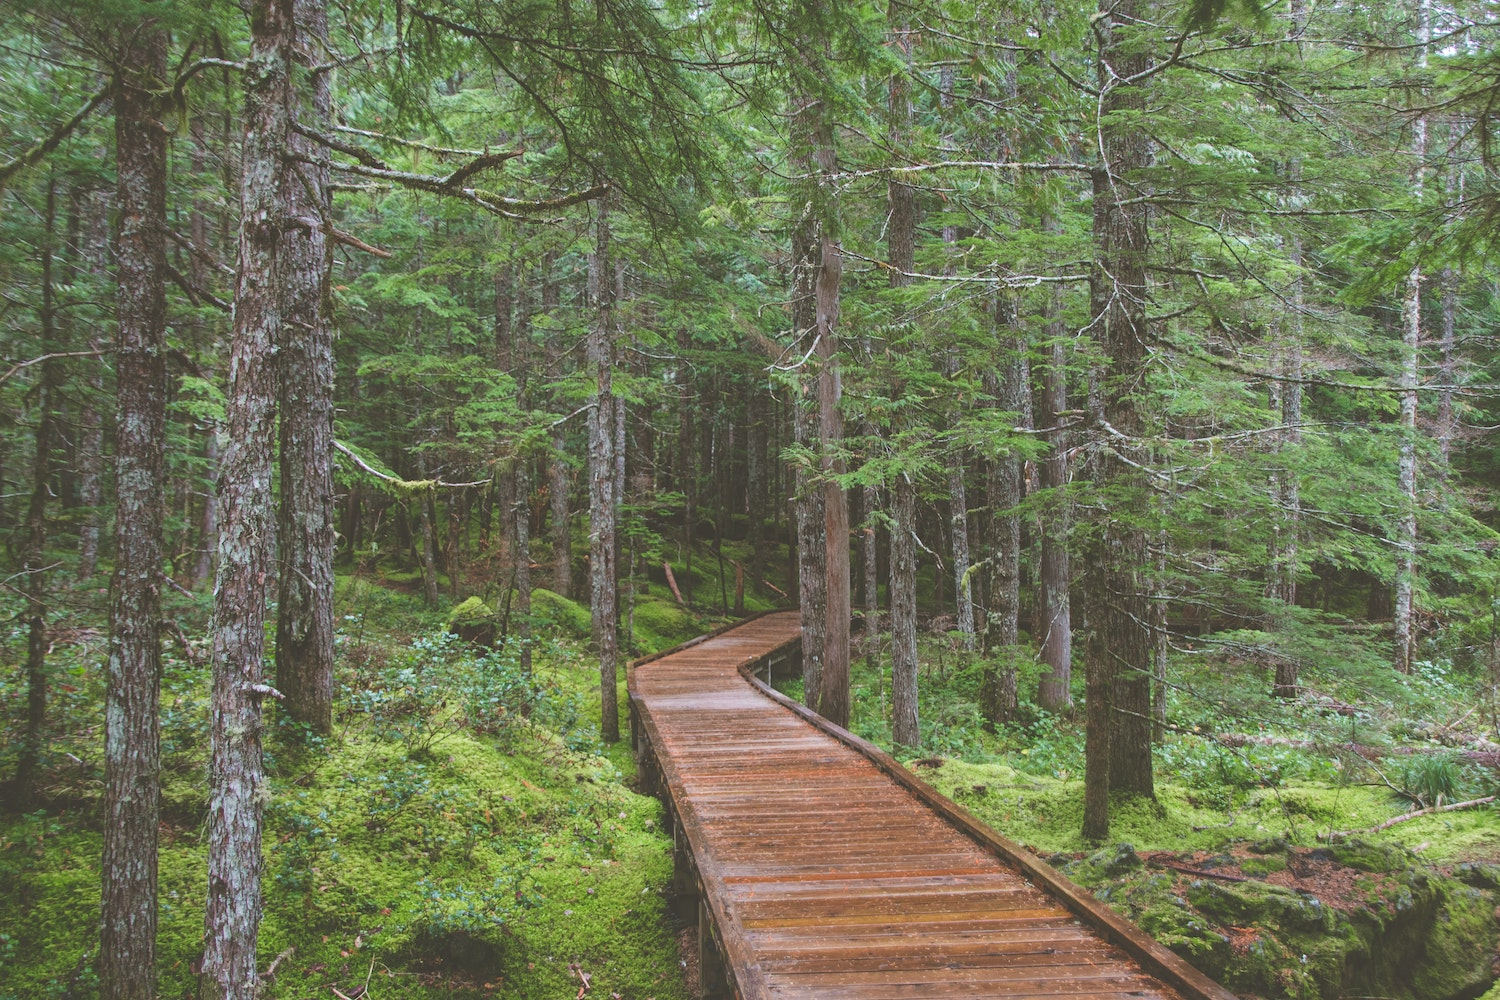 a wooden footpath in the woods